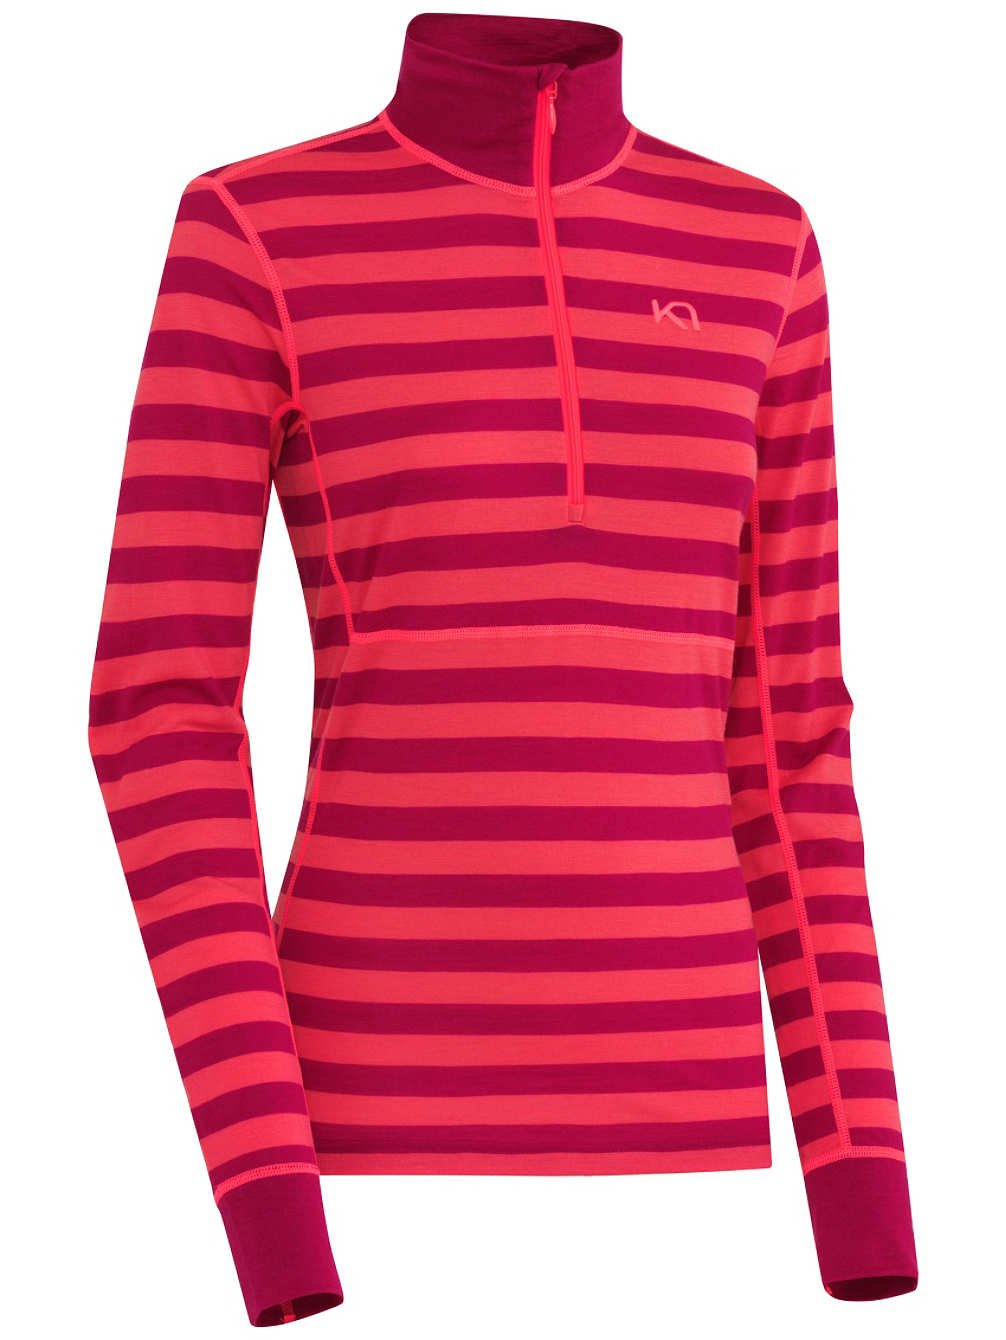 Kari Traa Ulla Half-Zip Top -Women's Ruby, XL